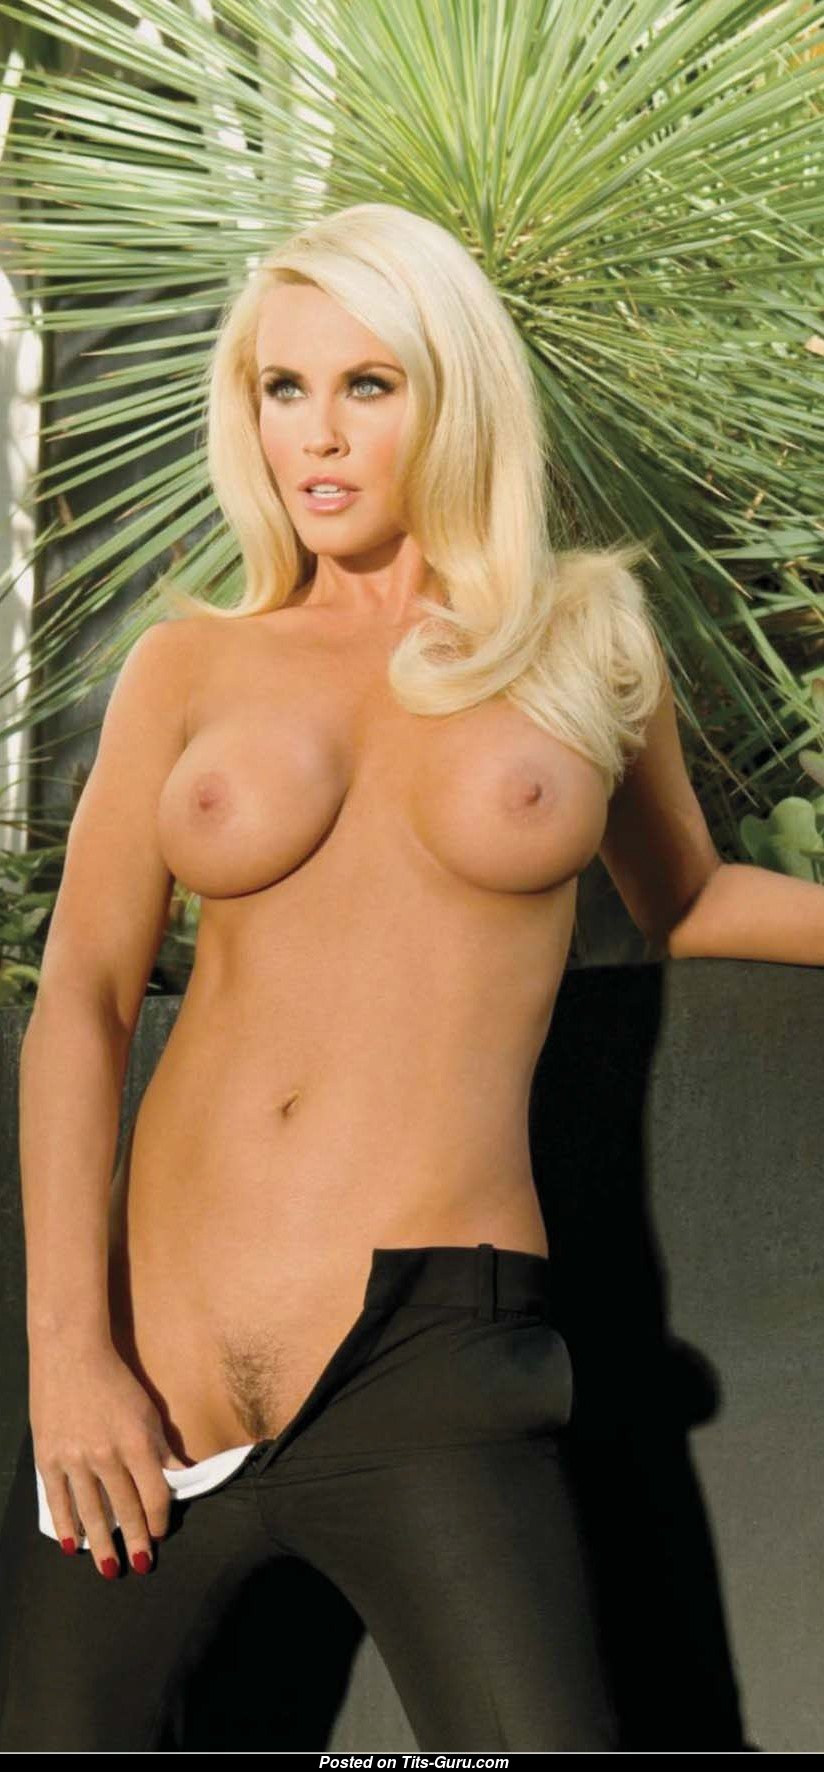 Jenny Mccarthy Porn Video jenny mccarthy nude: 35 pics of hot naked boobs 😍